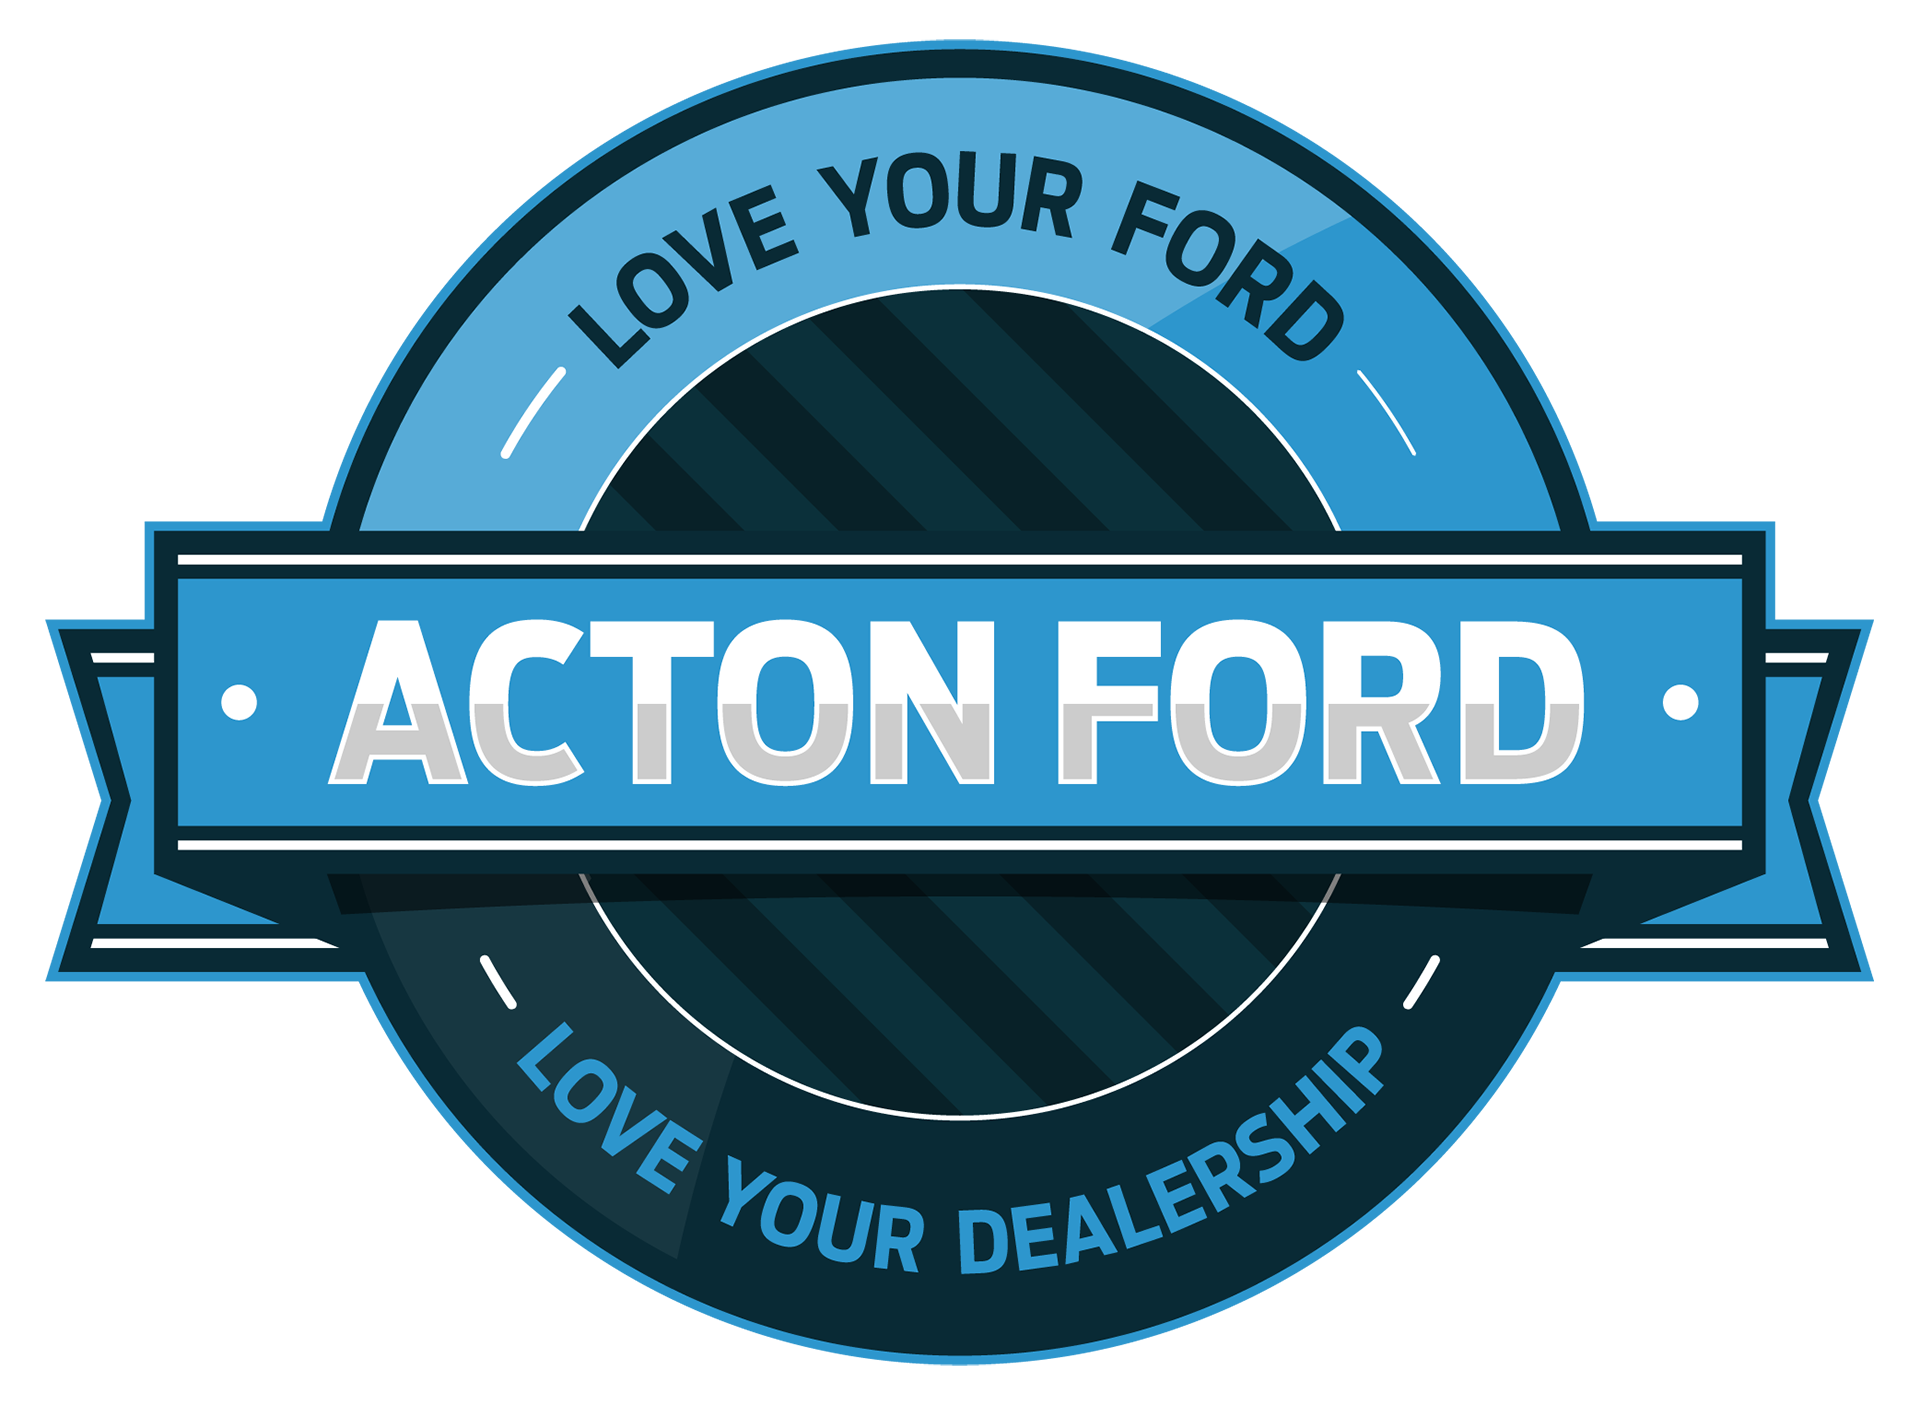 Acton Ford Lover Your Ford - Love Your Dealership